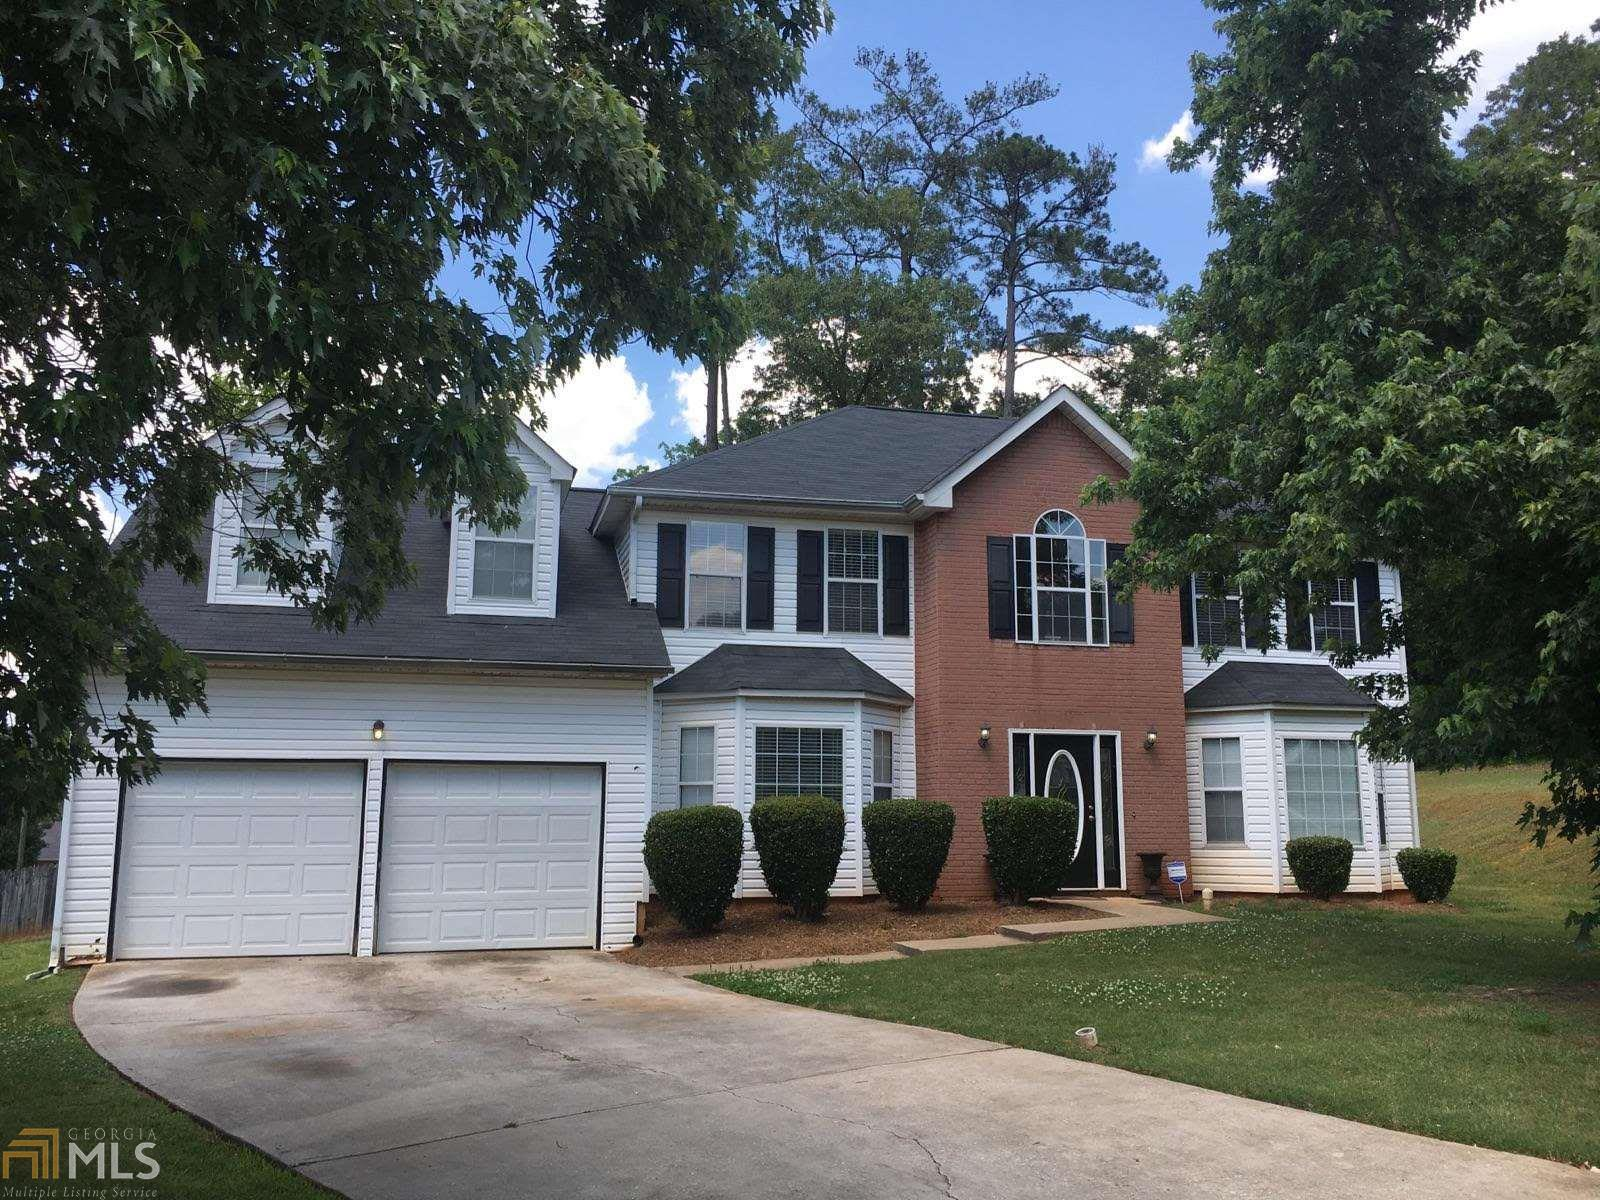 3998 ansley bnd ellenwood ga 30294 estimate and home details